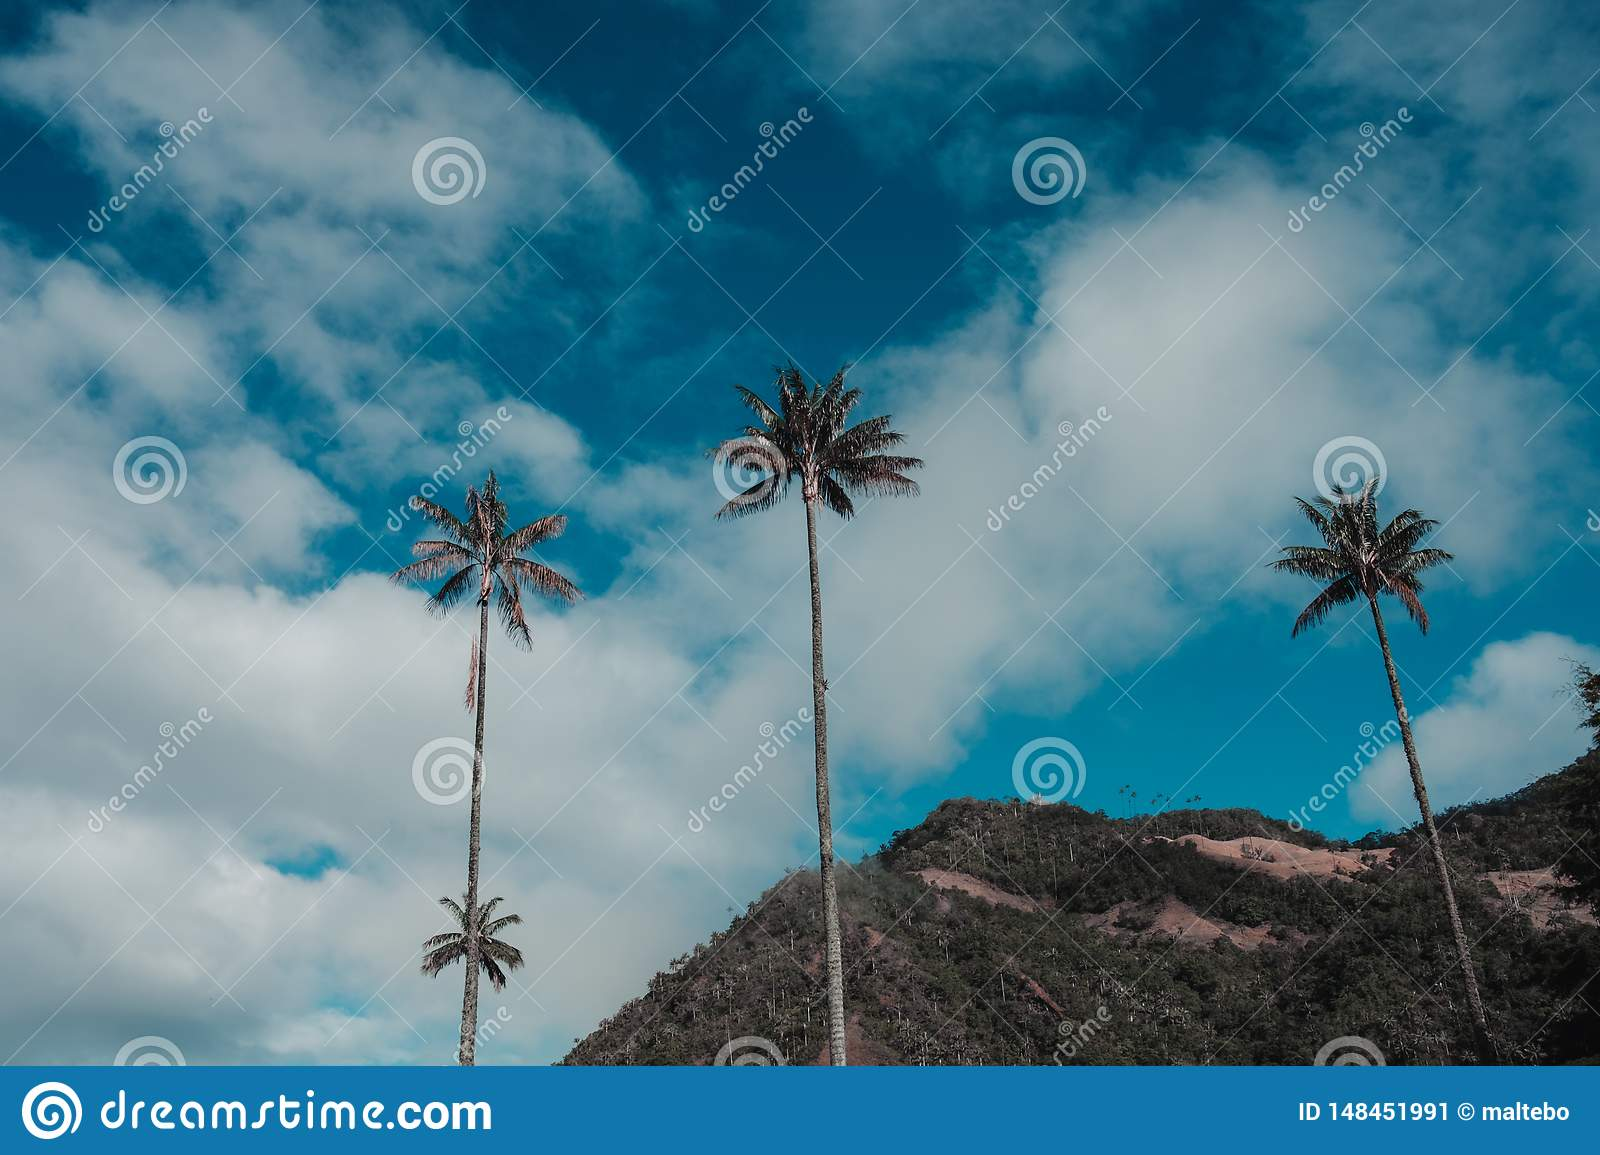 Tall palm trees in the valle de cocora